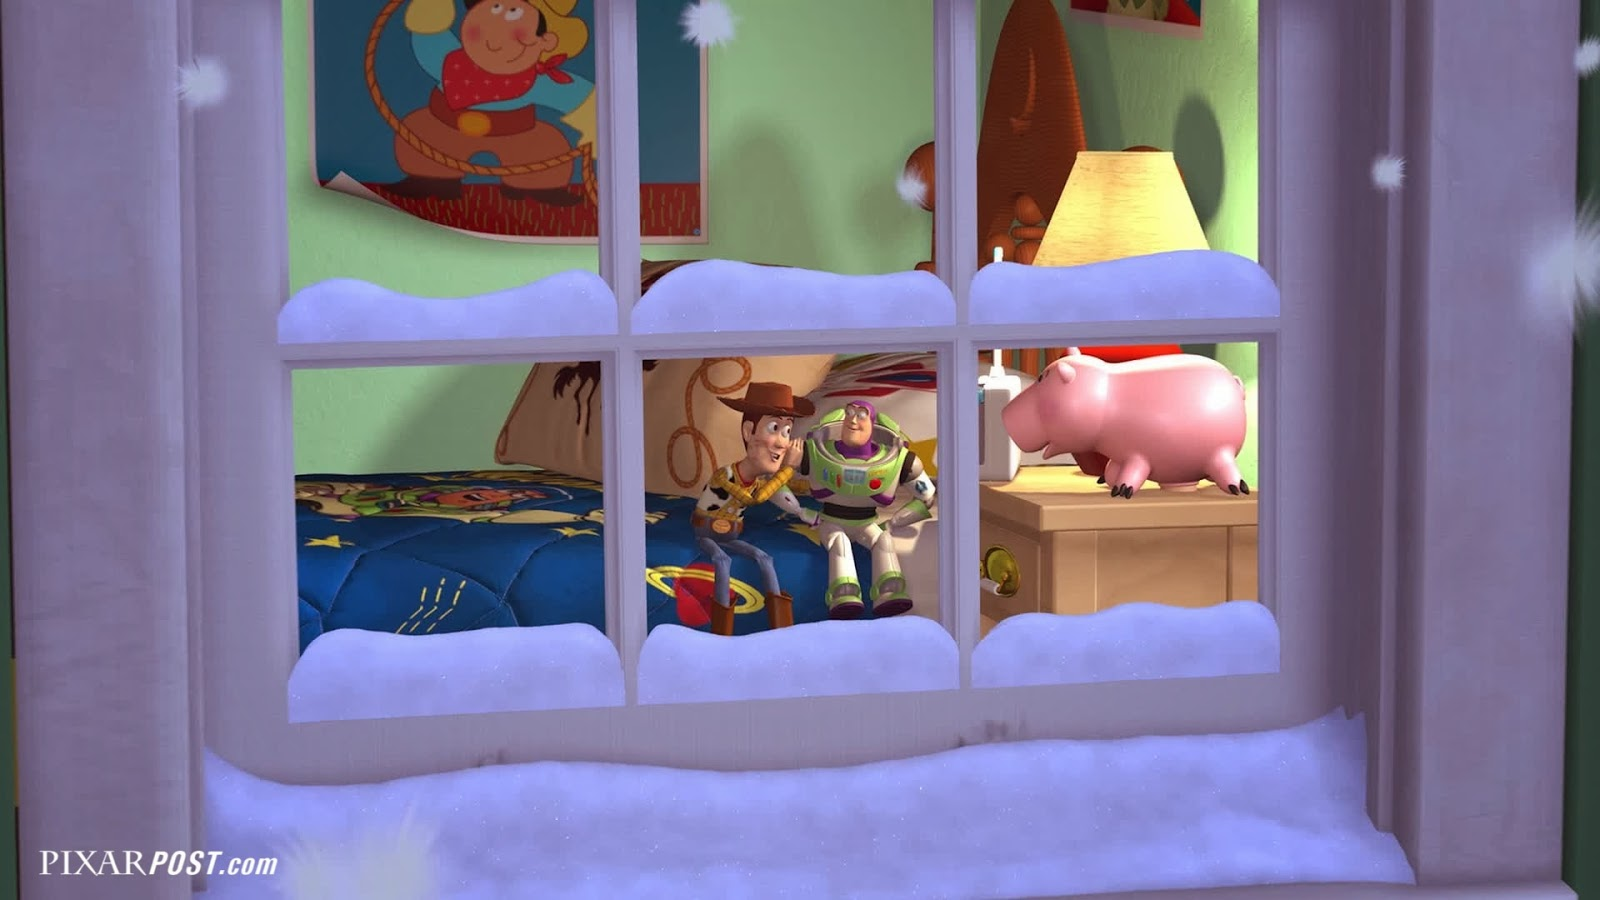 toy story that time forgot christmas special airing on abc this holiday season - Toy Story Christmas Special